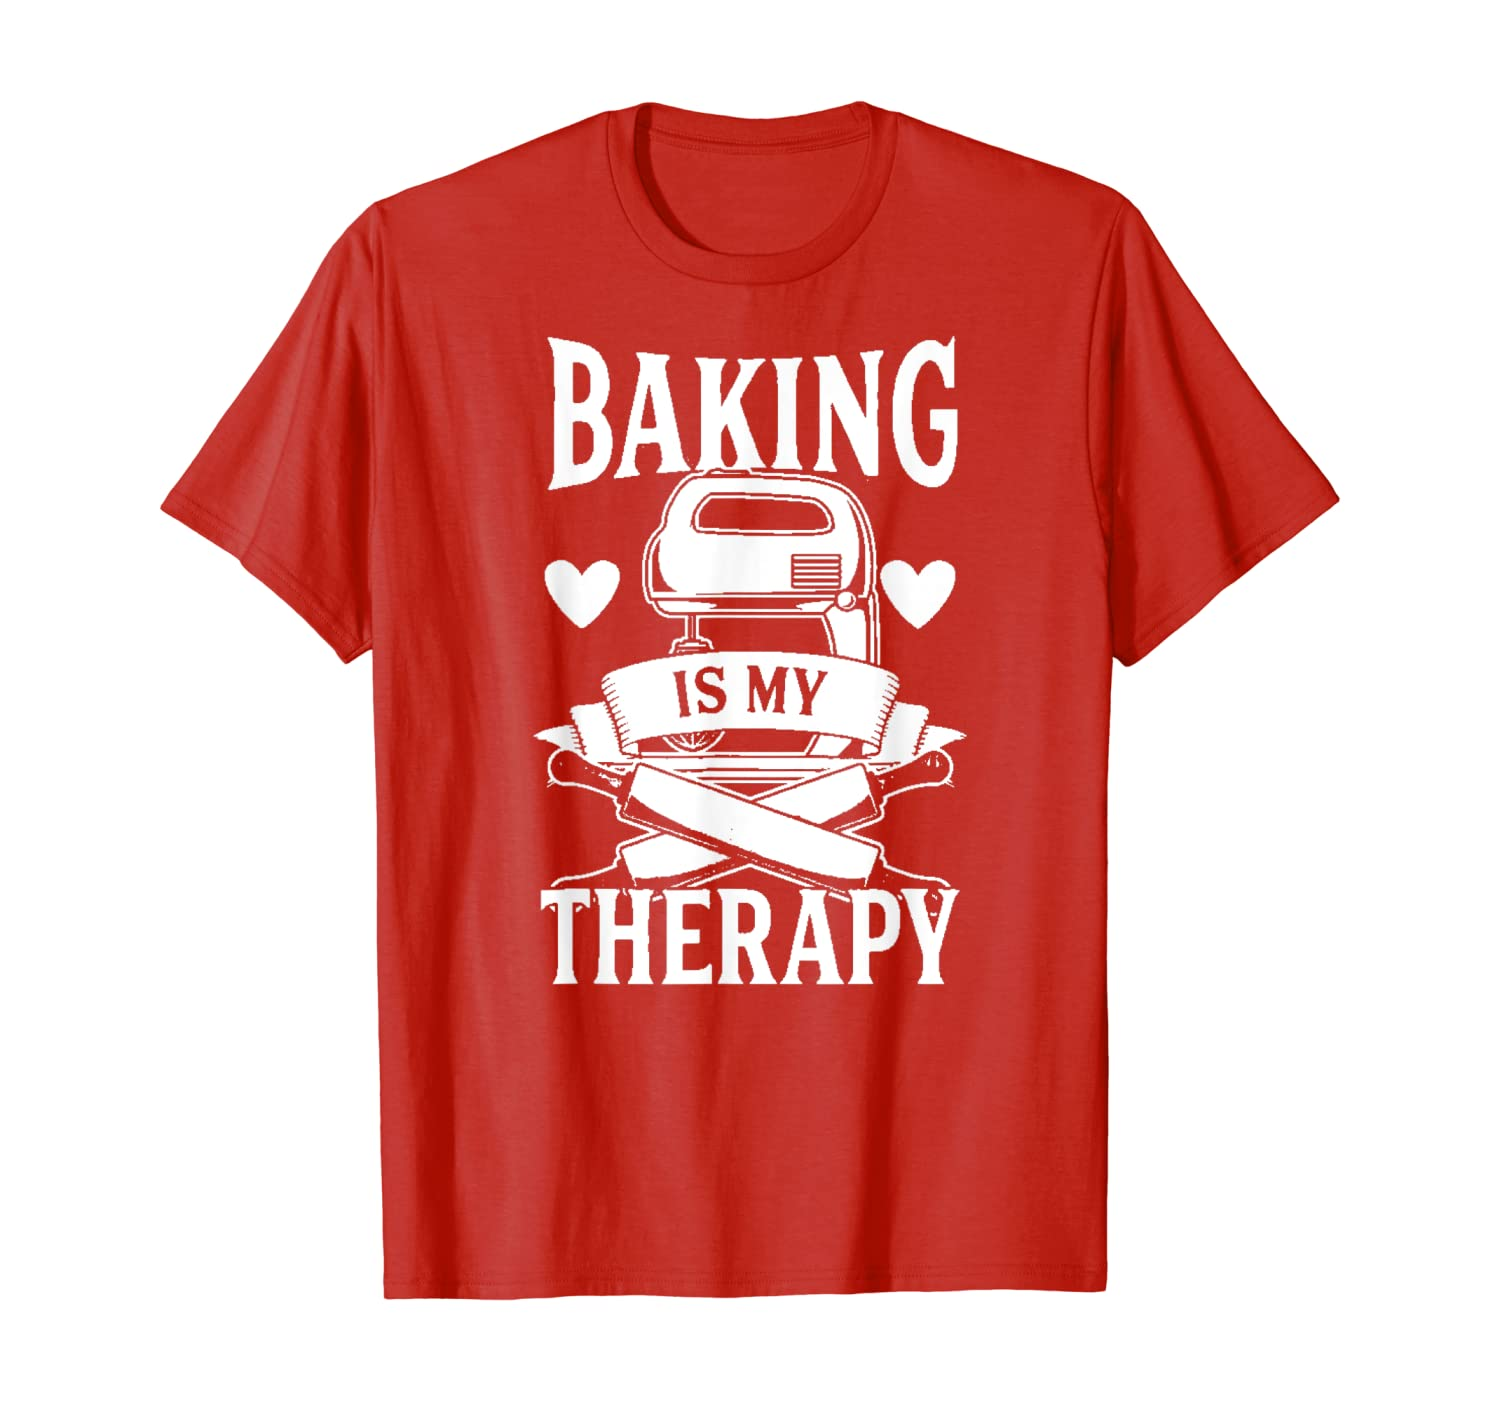 Baking is my therapy Gifts for Bakers T-Shirt T-Shirt